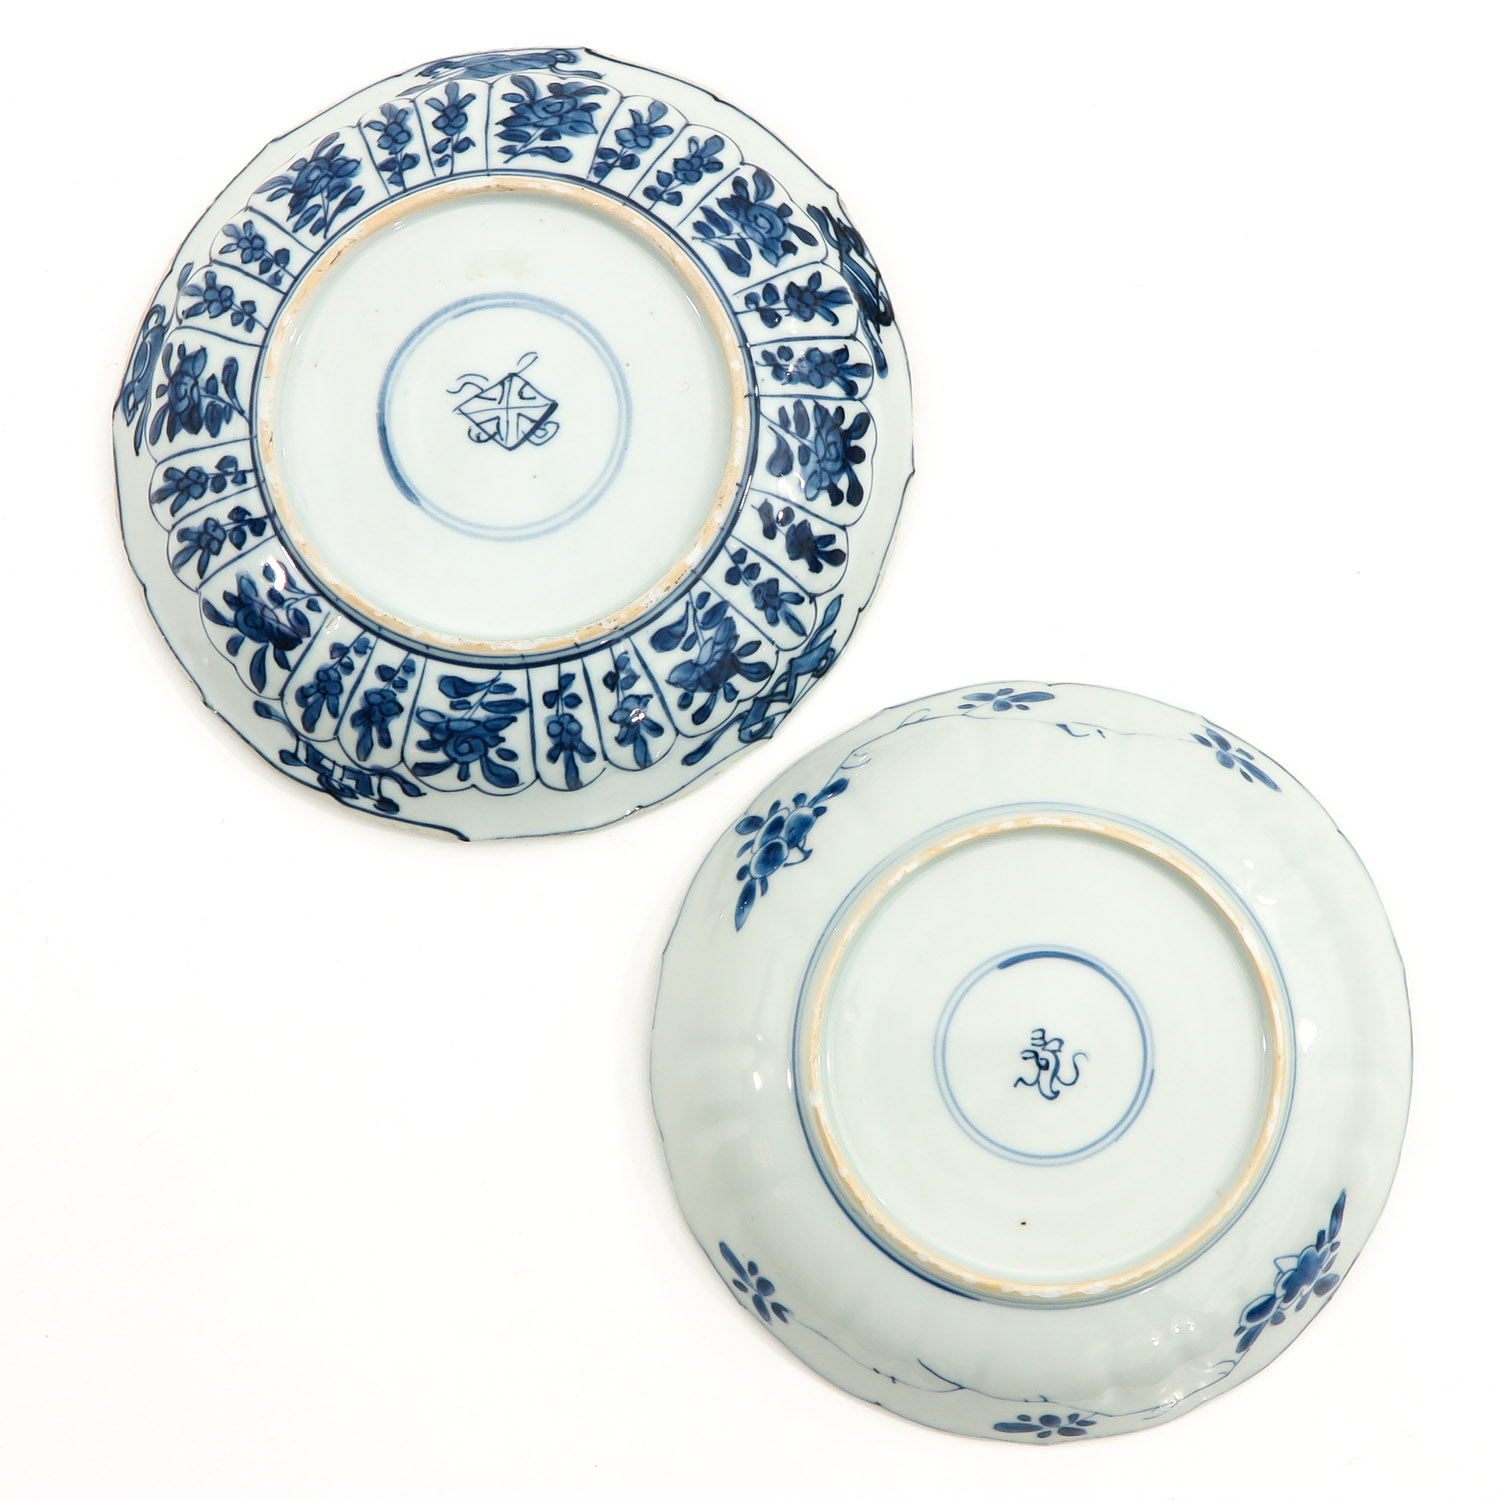 2 Blue and White Plates - Image 2 of 10